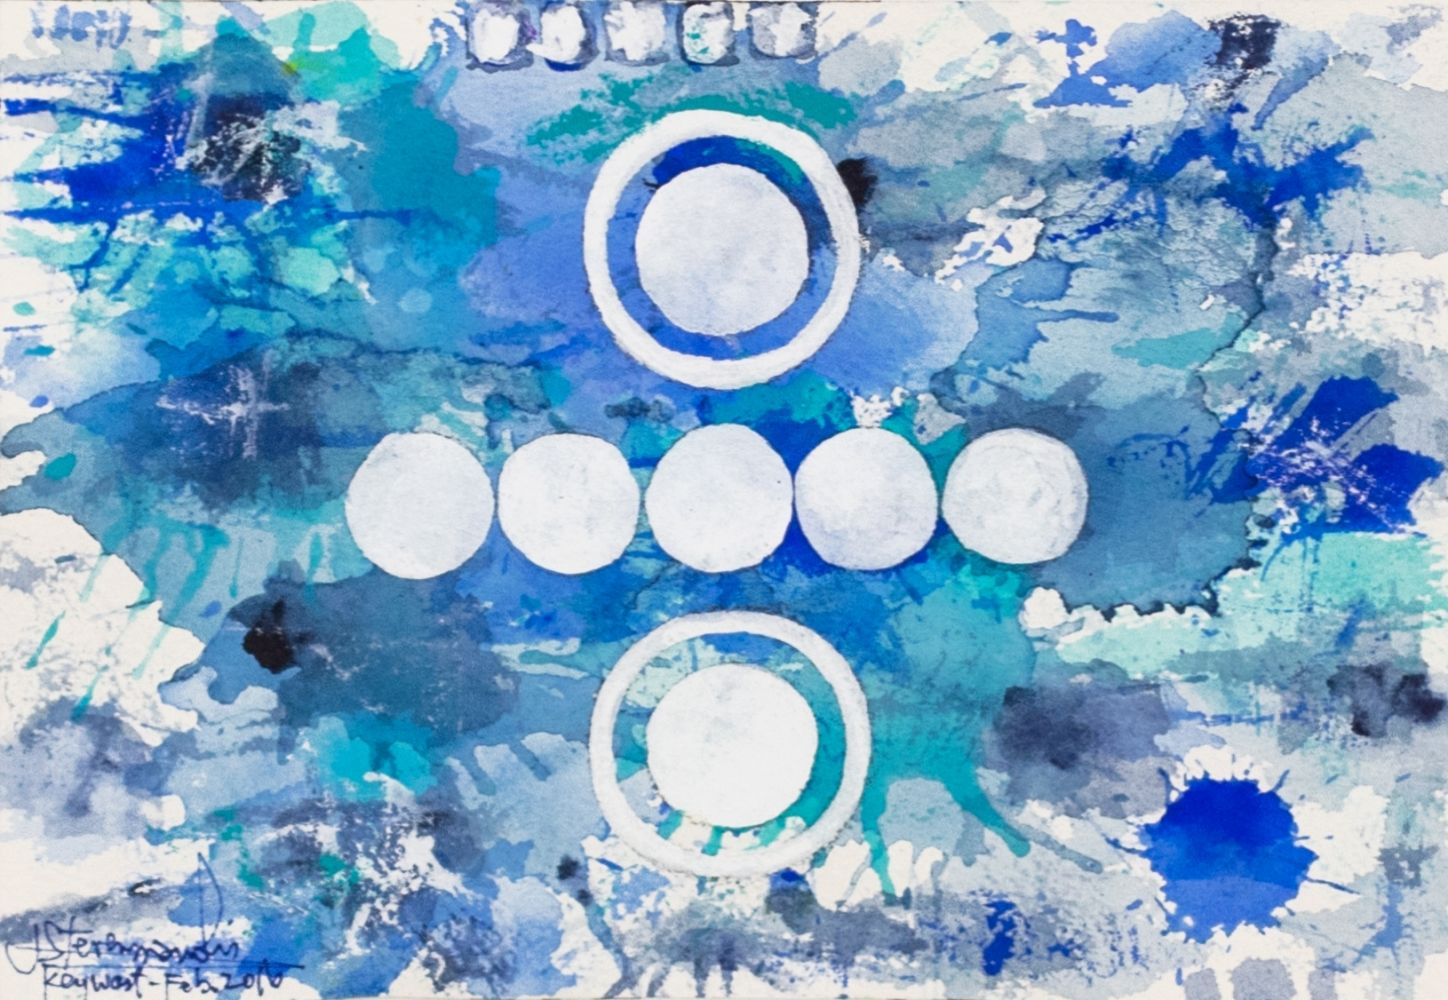 J. Steven Manolis, Splash-Key West (Social Conscious) 07.10.04, 2016, Watercolor, Acrylic and Gouache on Arches paper, 7 x 10 inches, Abstract expressionism paintings for sale at Manolis Projects Art Gallery, Miami, Fl